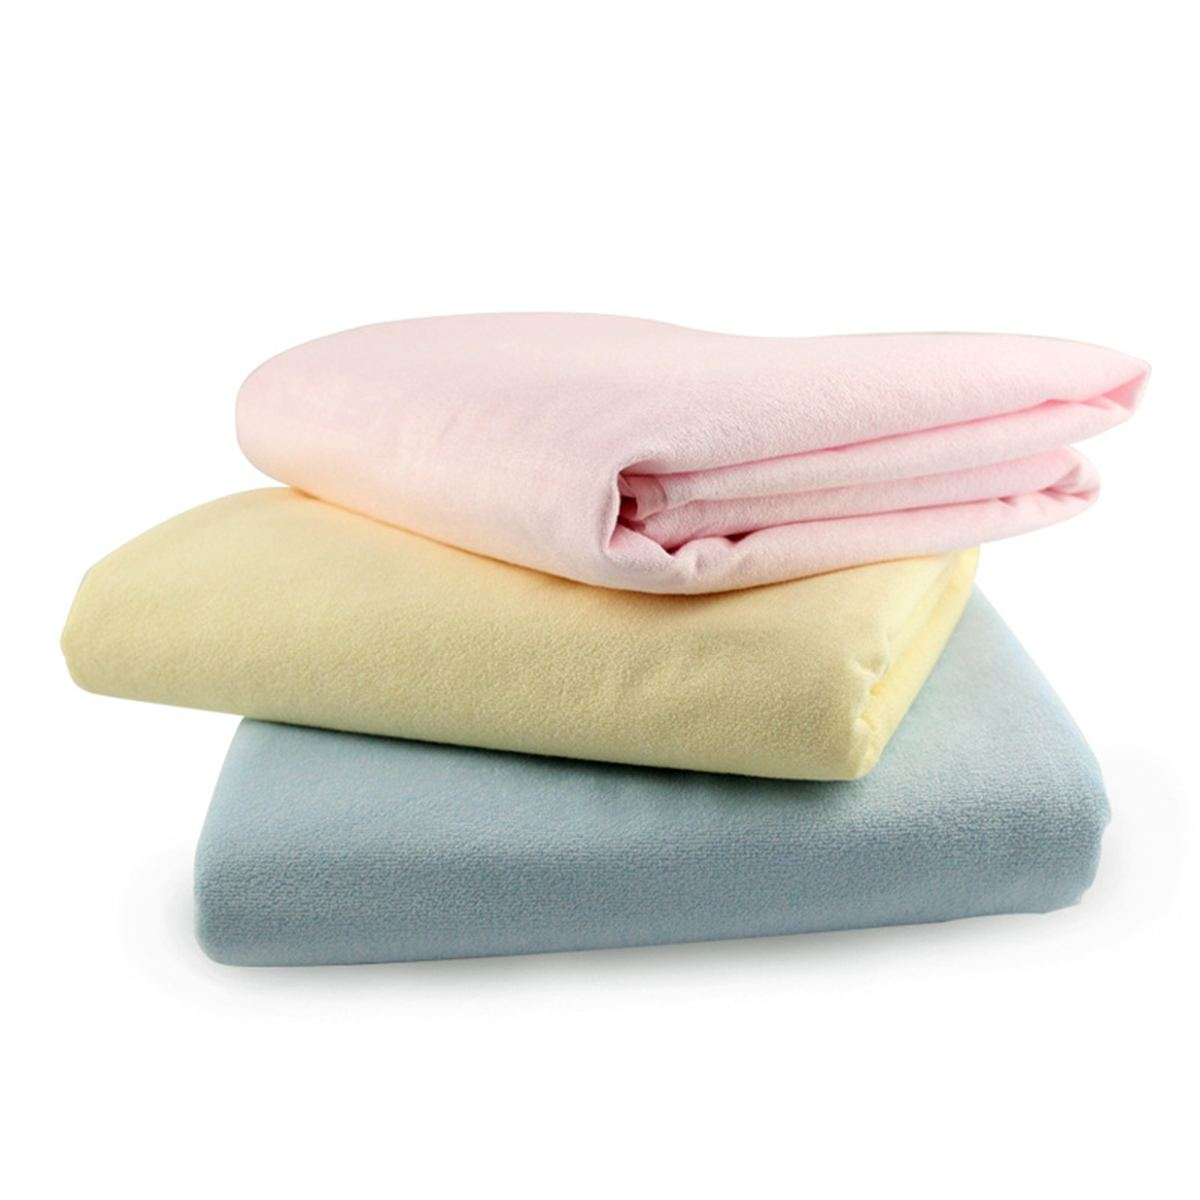 Baby Child Kids Elder Waterproof Washable Reusable Bed Pad Incontinence Bed Wetting Mattress Cover Protect 3 Colors 7 Sizes